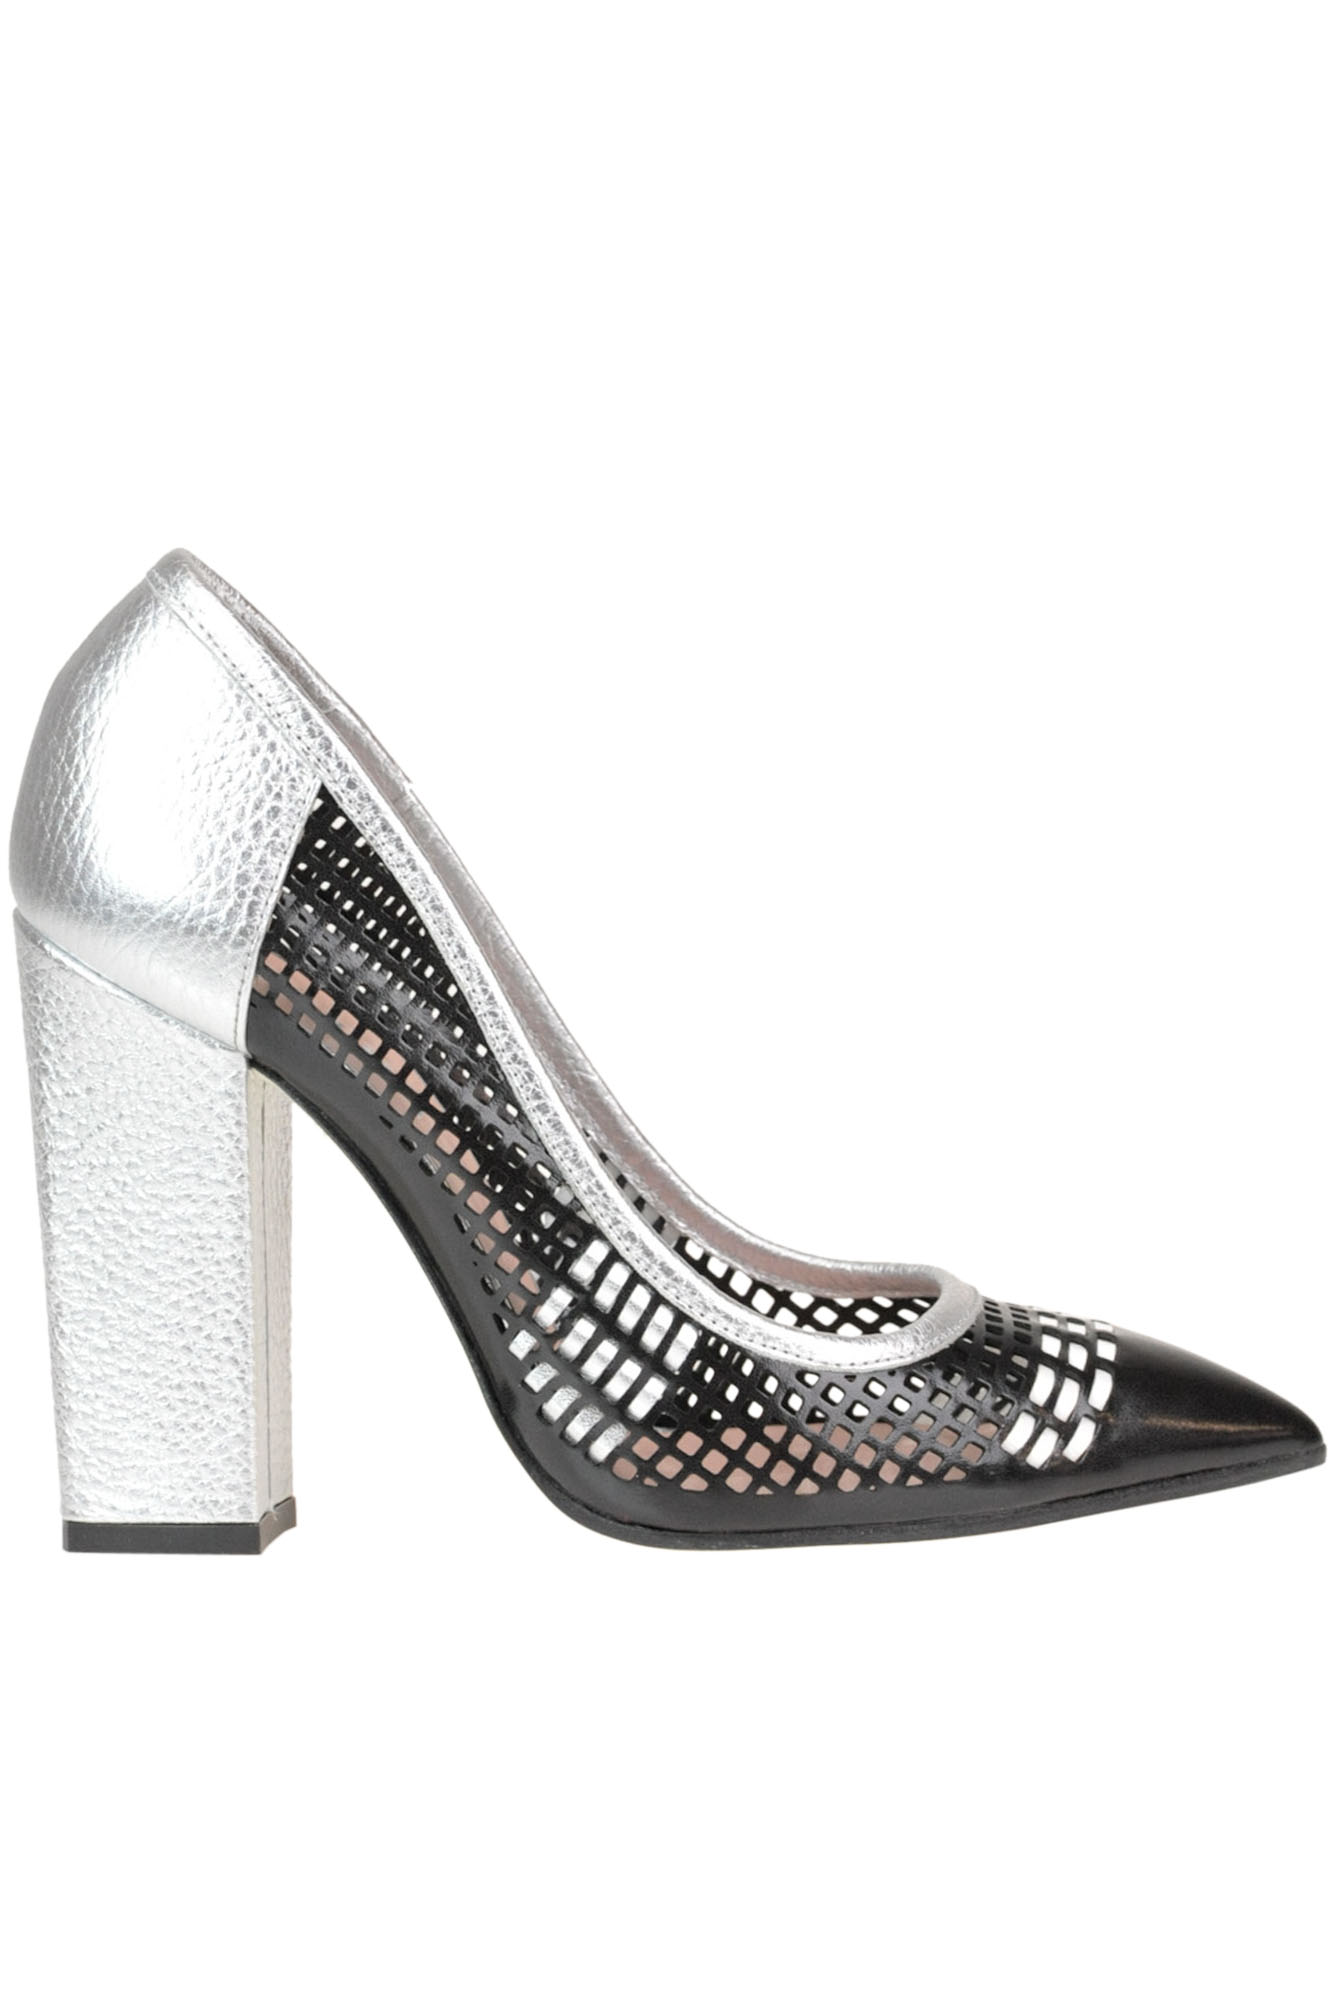 7dc46804c82 Pollini Cut-Out Leather Pumps In Multicoloured